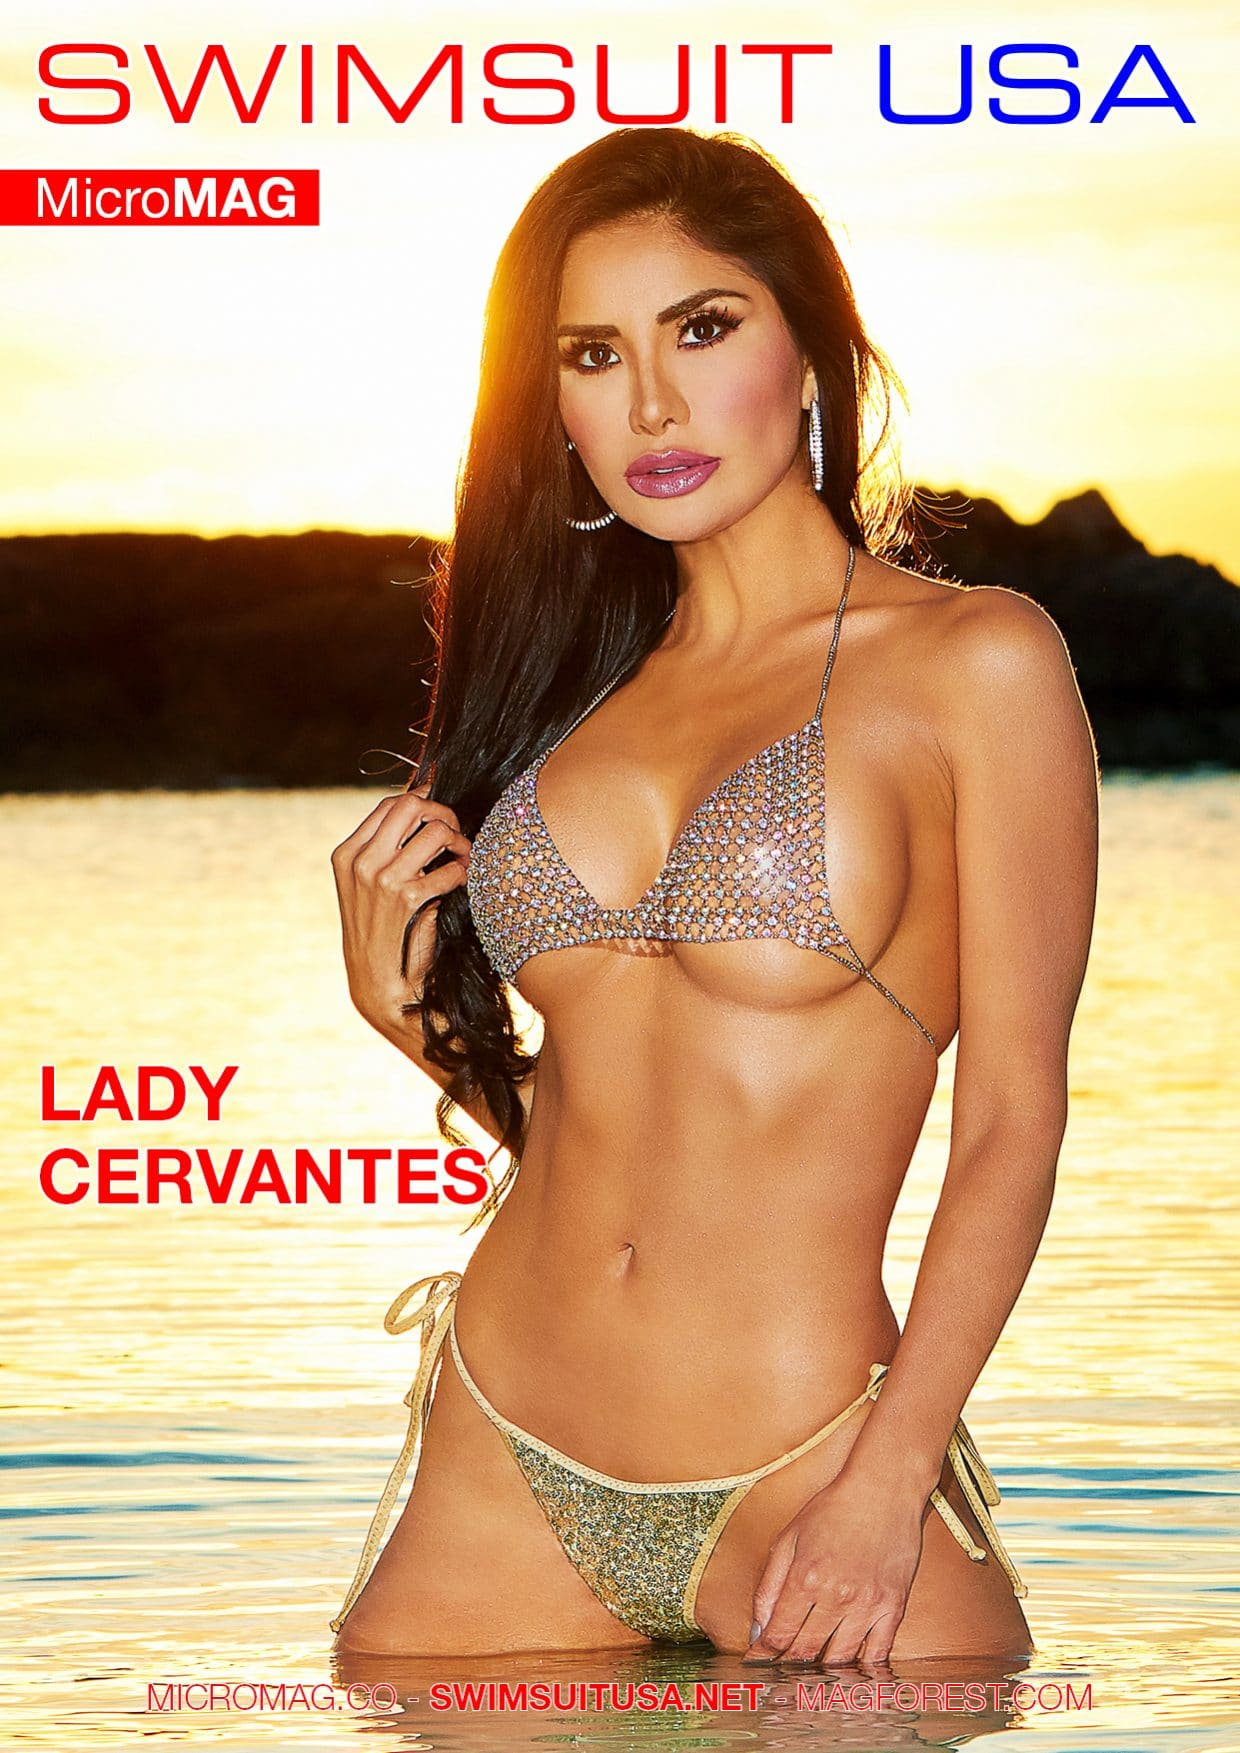 Swimsuit USA MicroMAG - Lady Cervantes 1